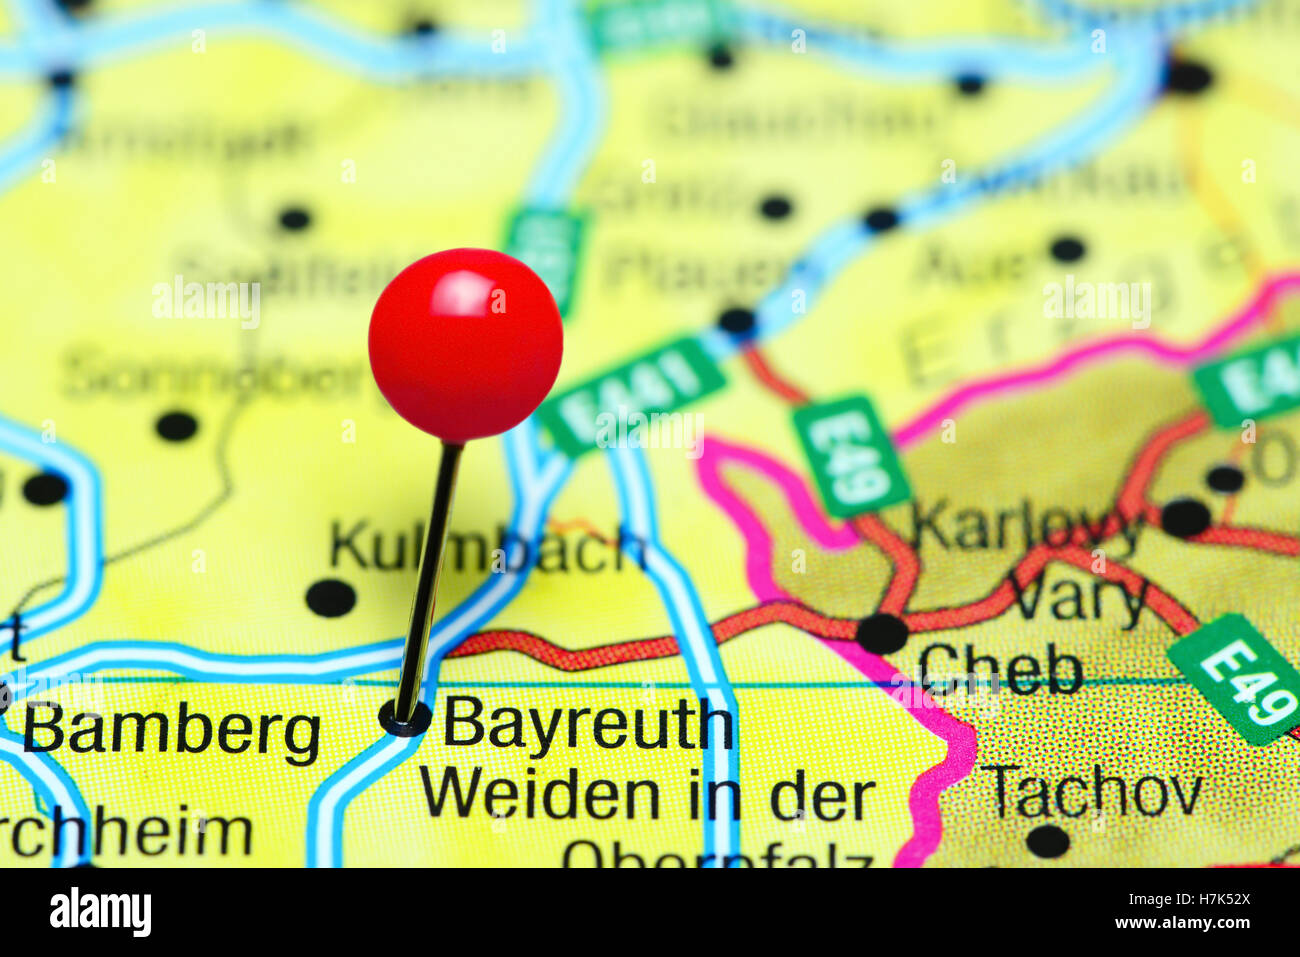 Bayreuth Pinned On A Map Of Germany Stock Photo 125196258 Alamy